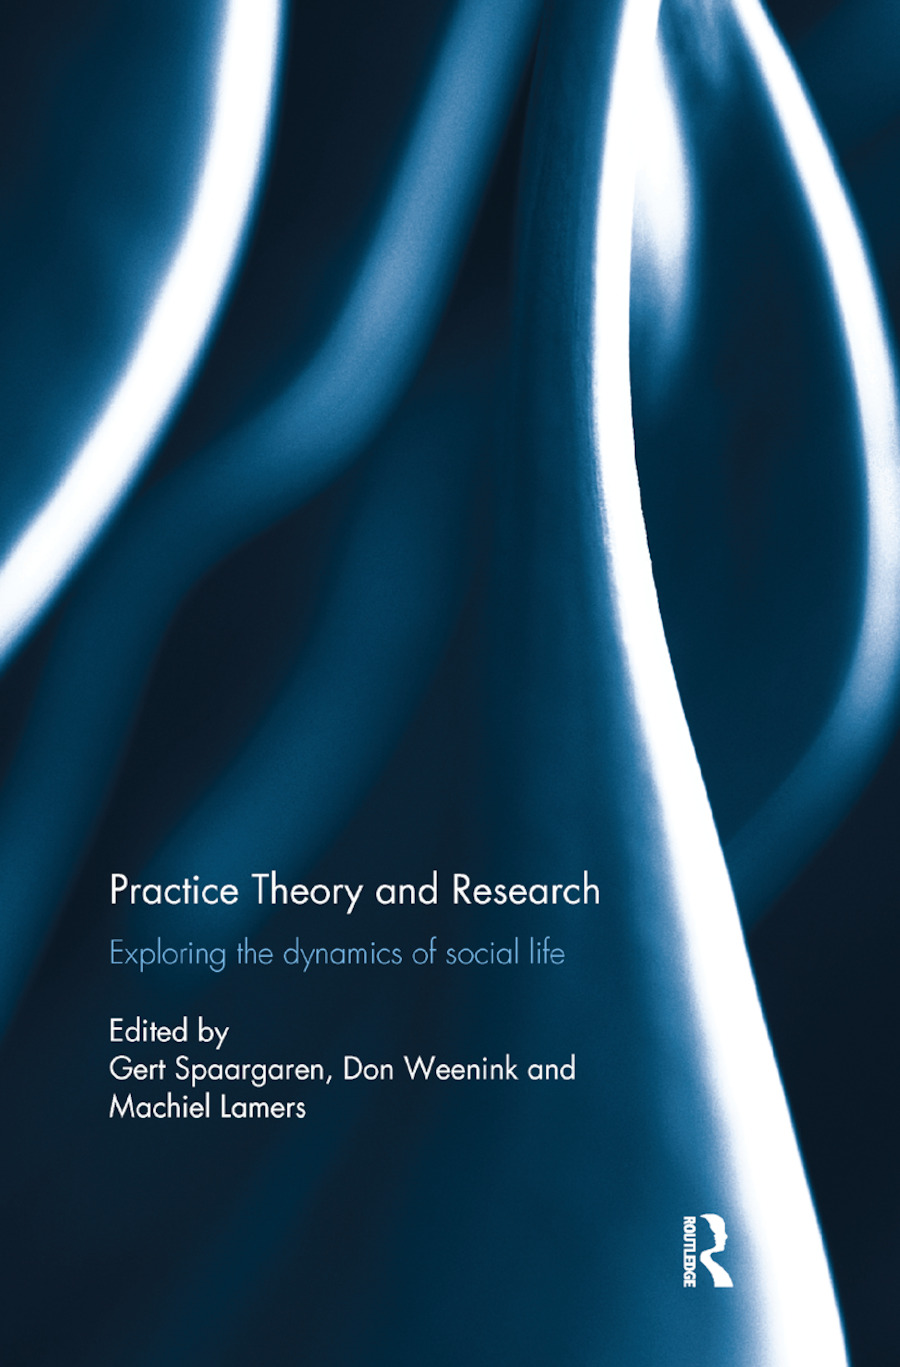 Practice Theory and Research: Exploring the dynamics of social life book cover